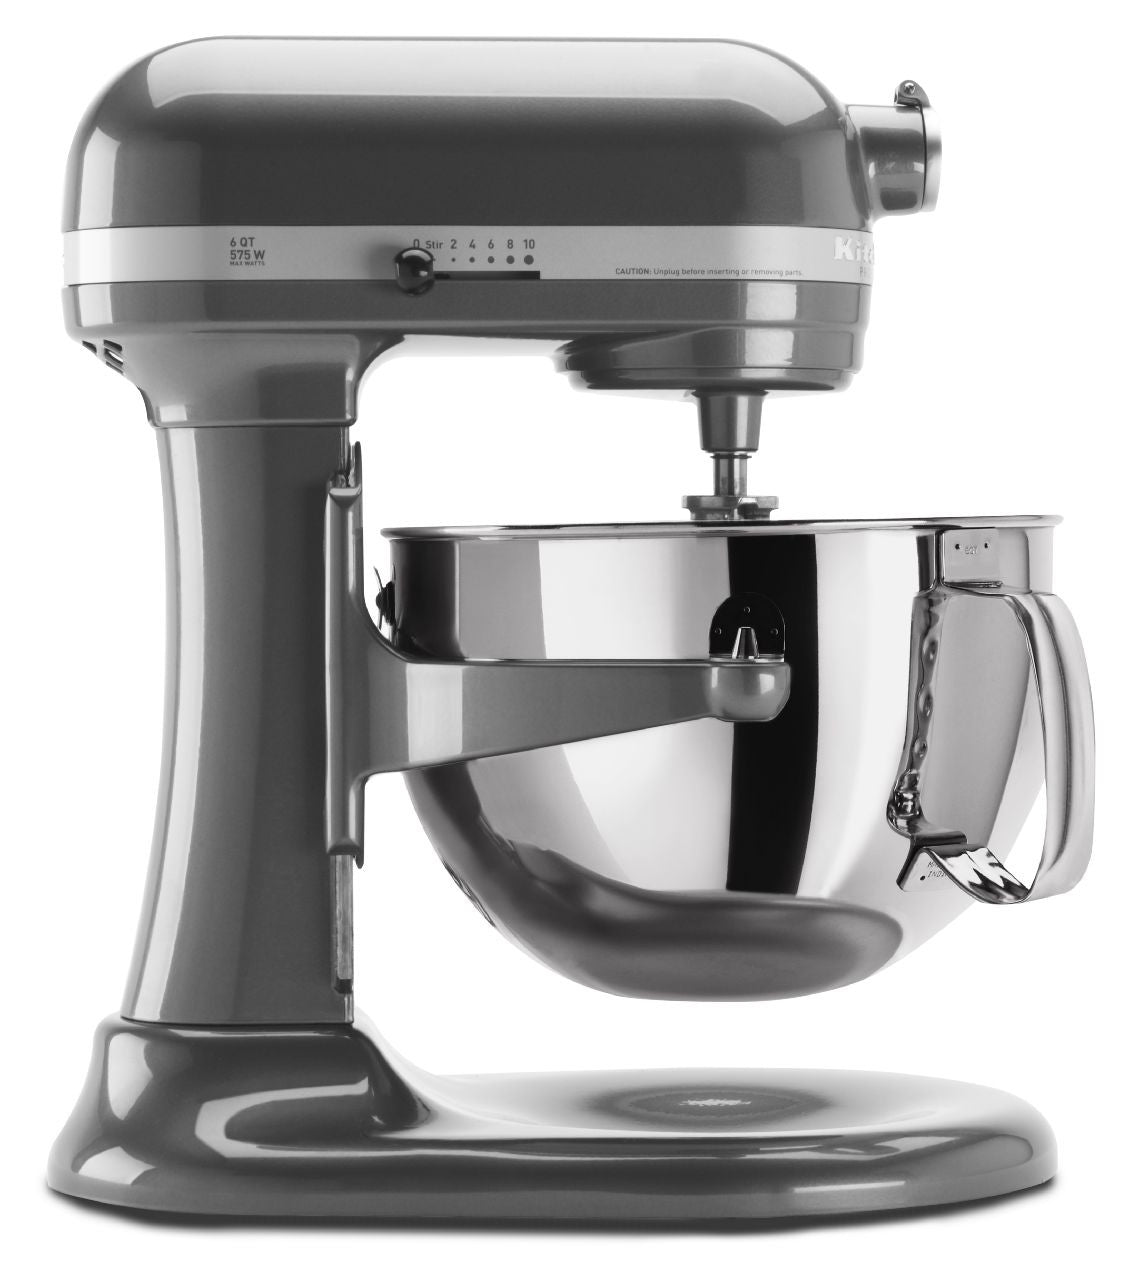 Kitchenaid 6 Qt. Professional 600 Series with Pouring Shield - Pearl Metallic KP26M1XPM